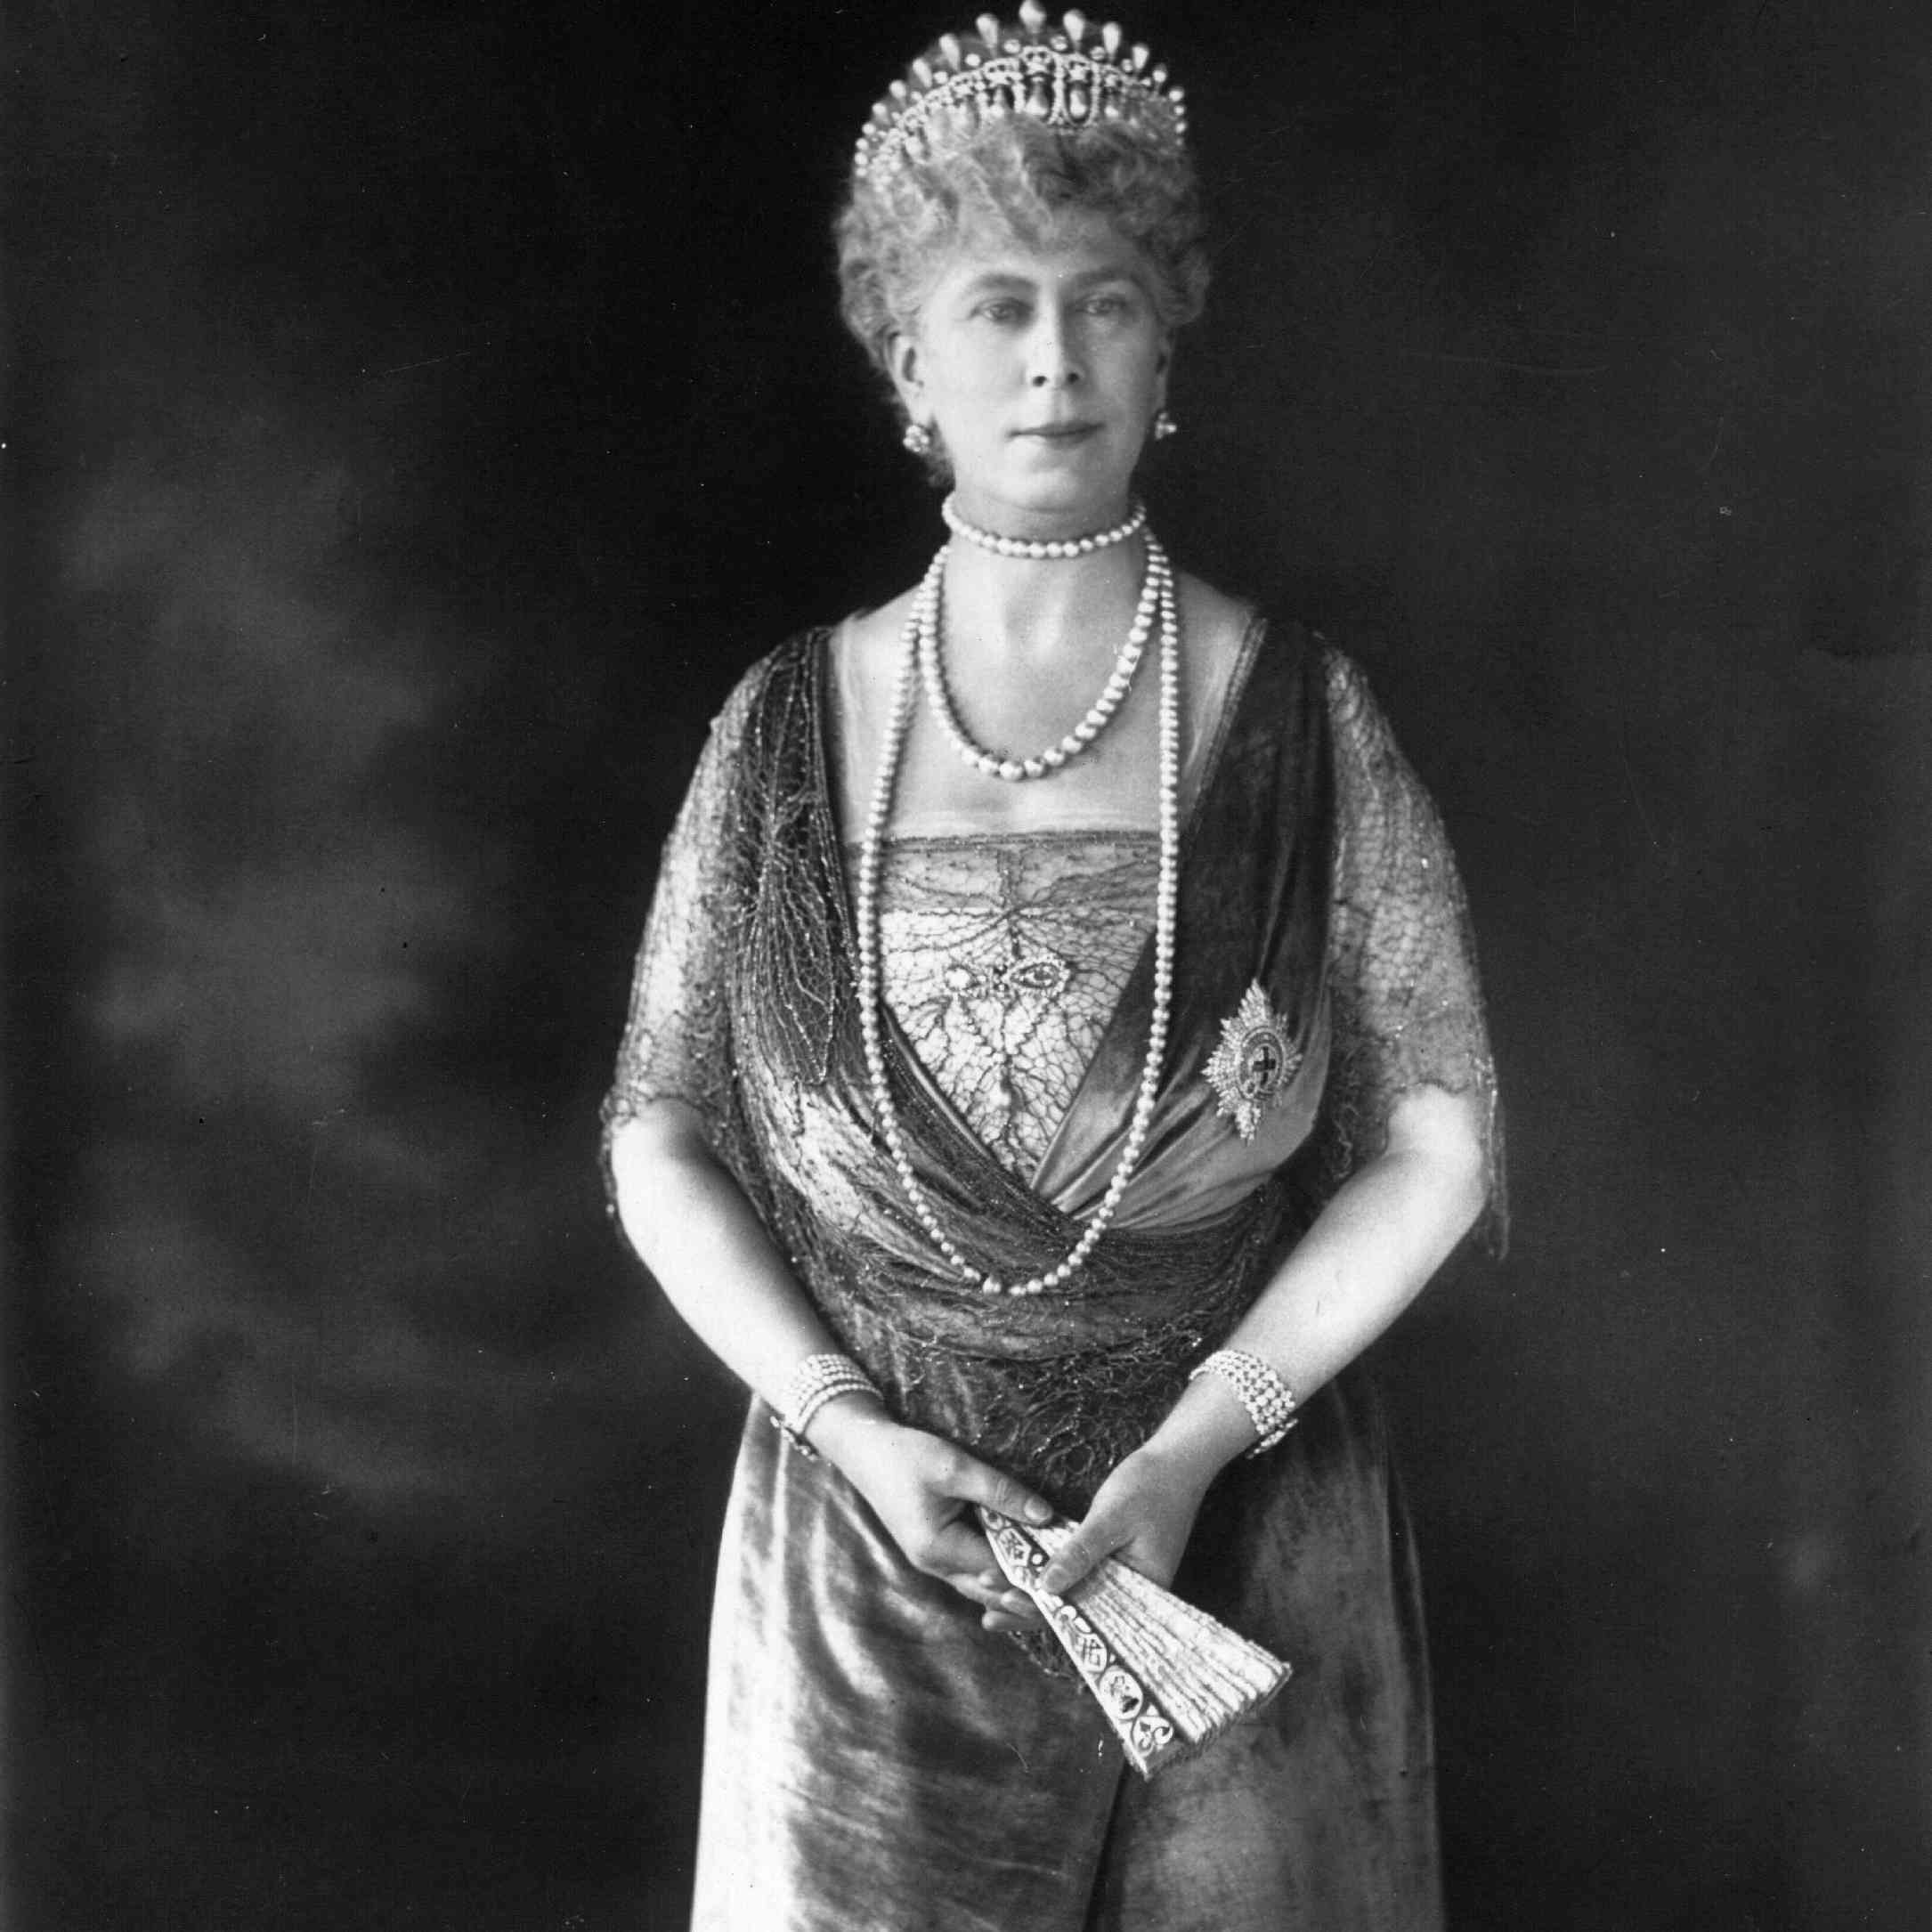 Photograph of Queen Mary of Teck in a formal gown and tiara